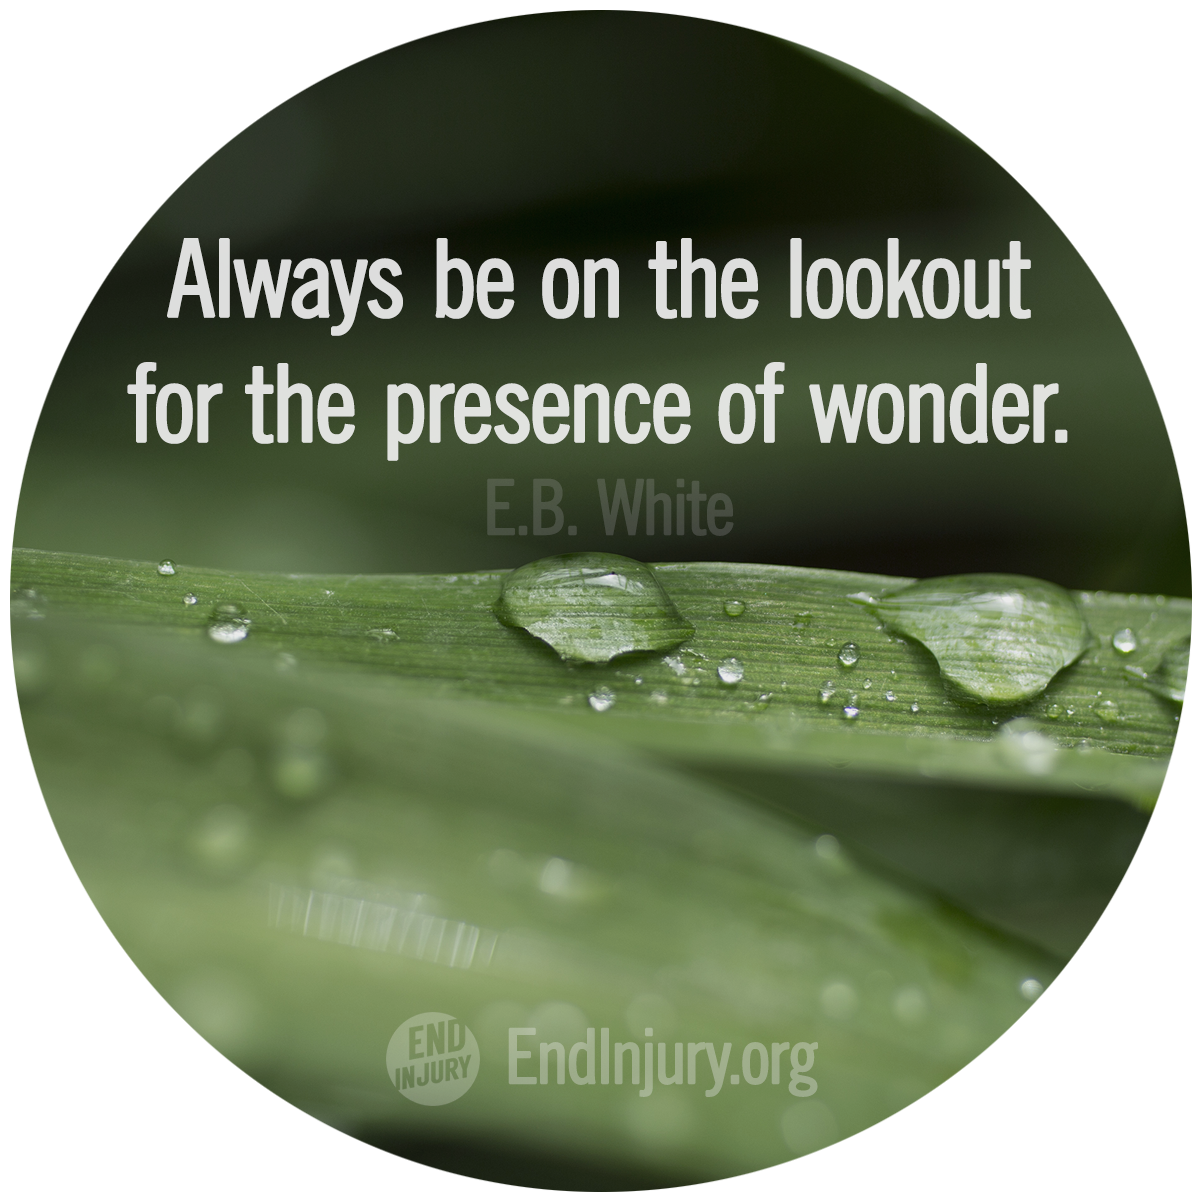 lookout-presence-wonder-white-photo.png